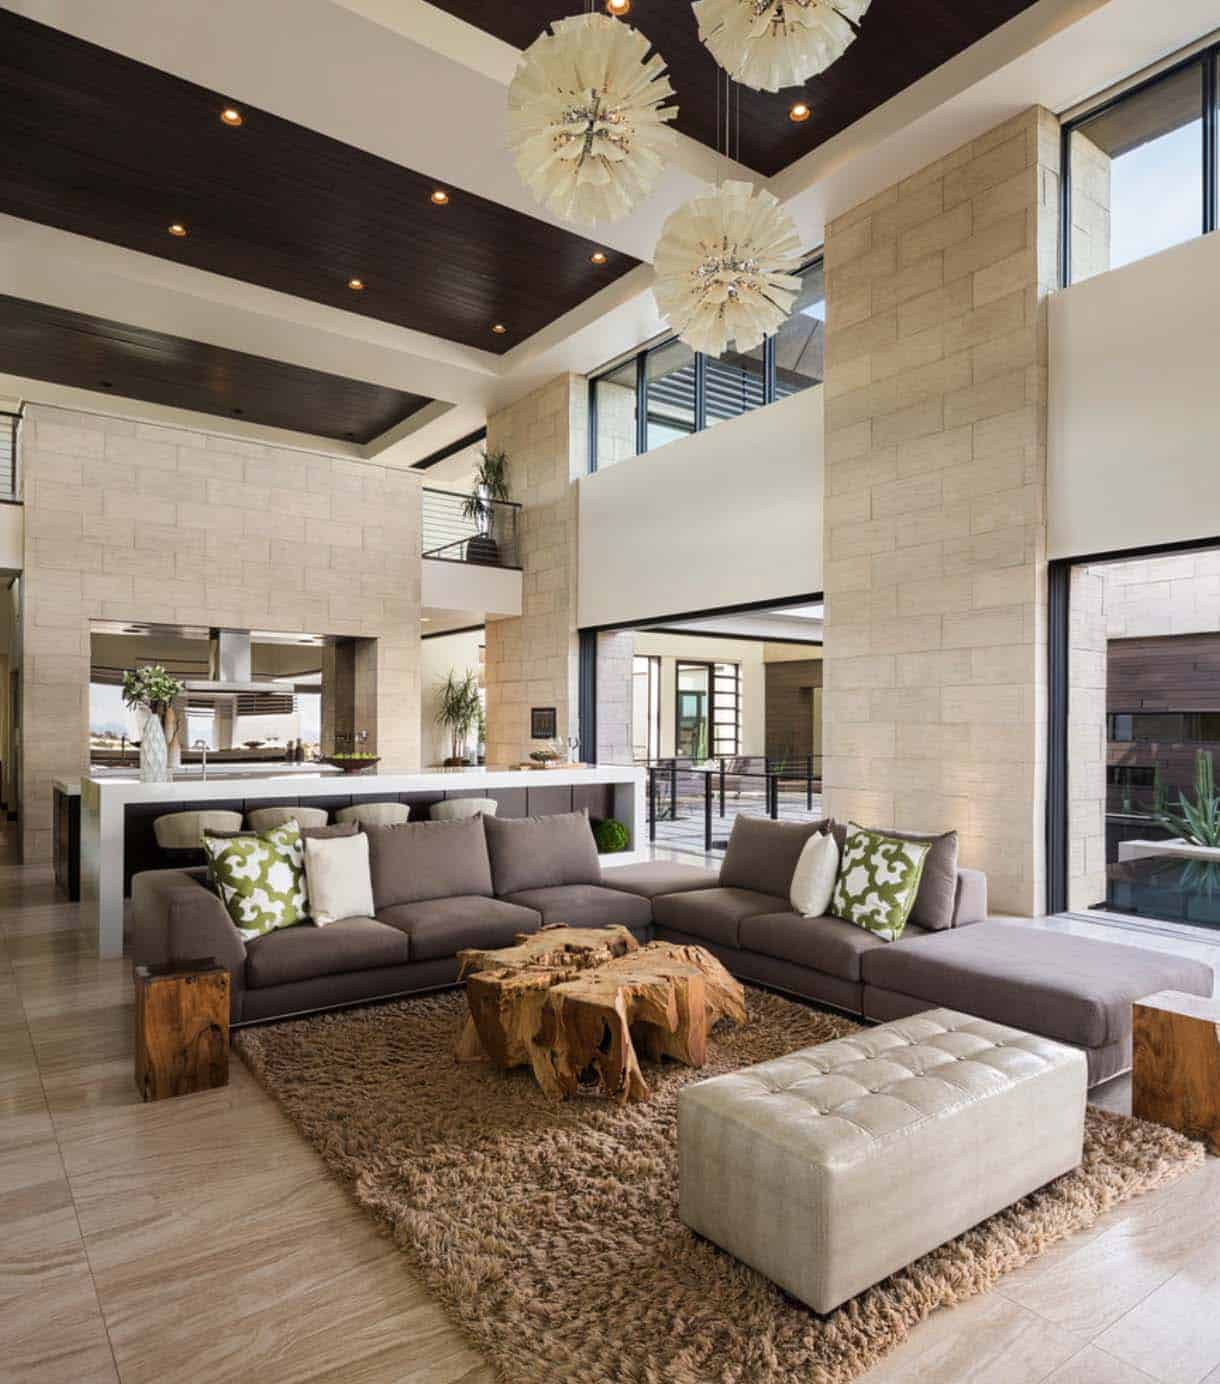 Phenomenal desert contemporary showcase home in Nevada